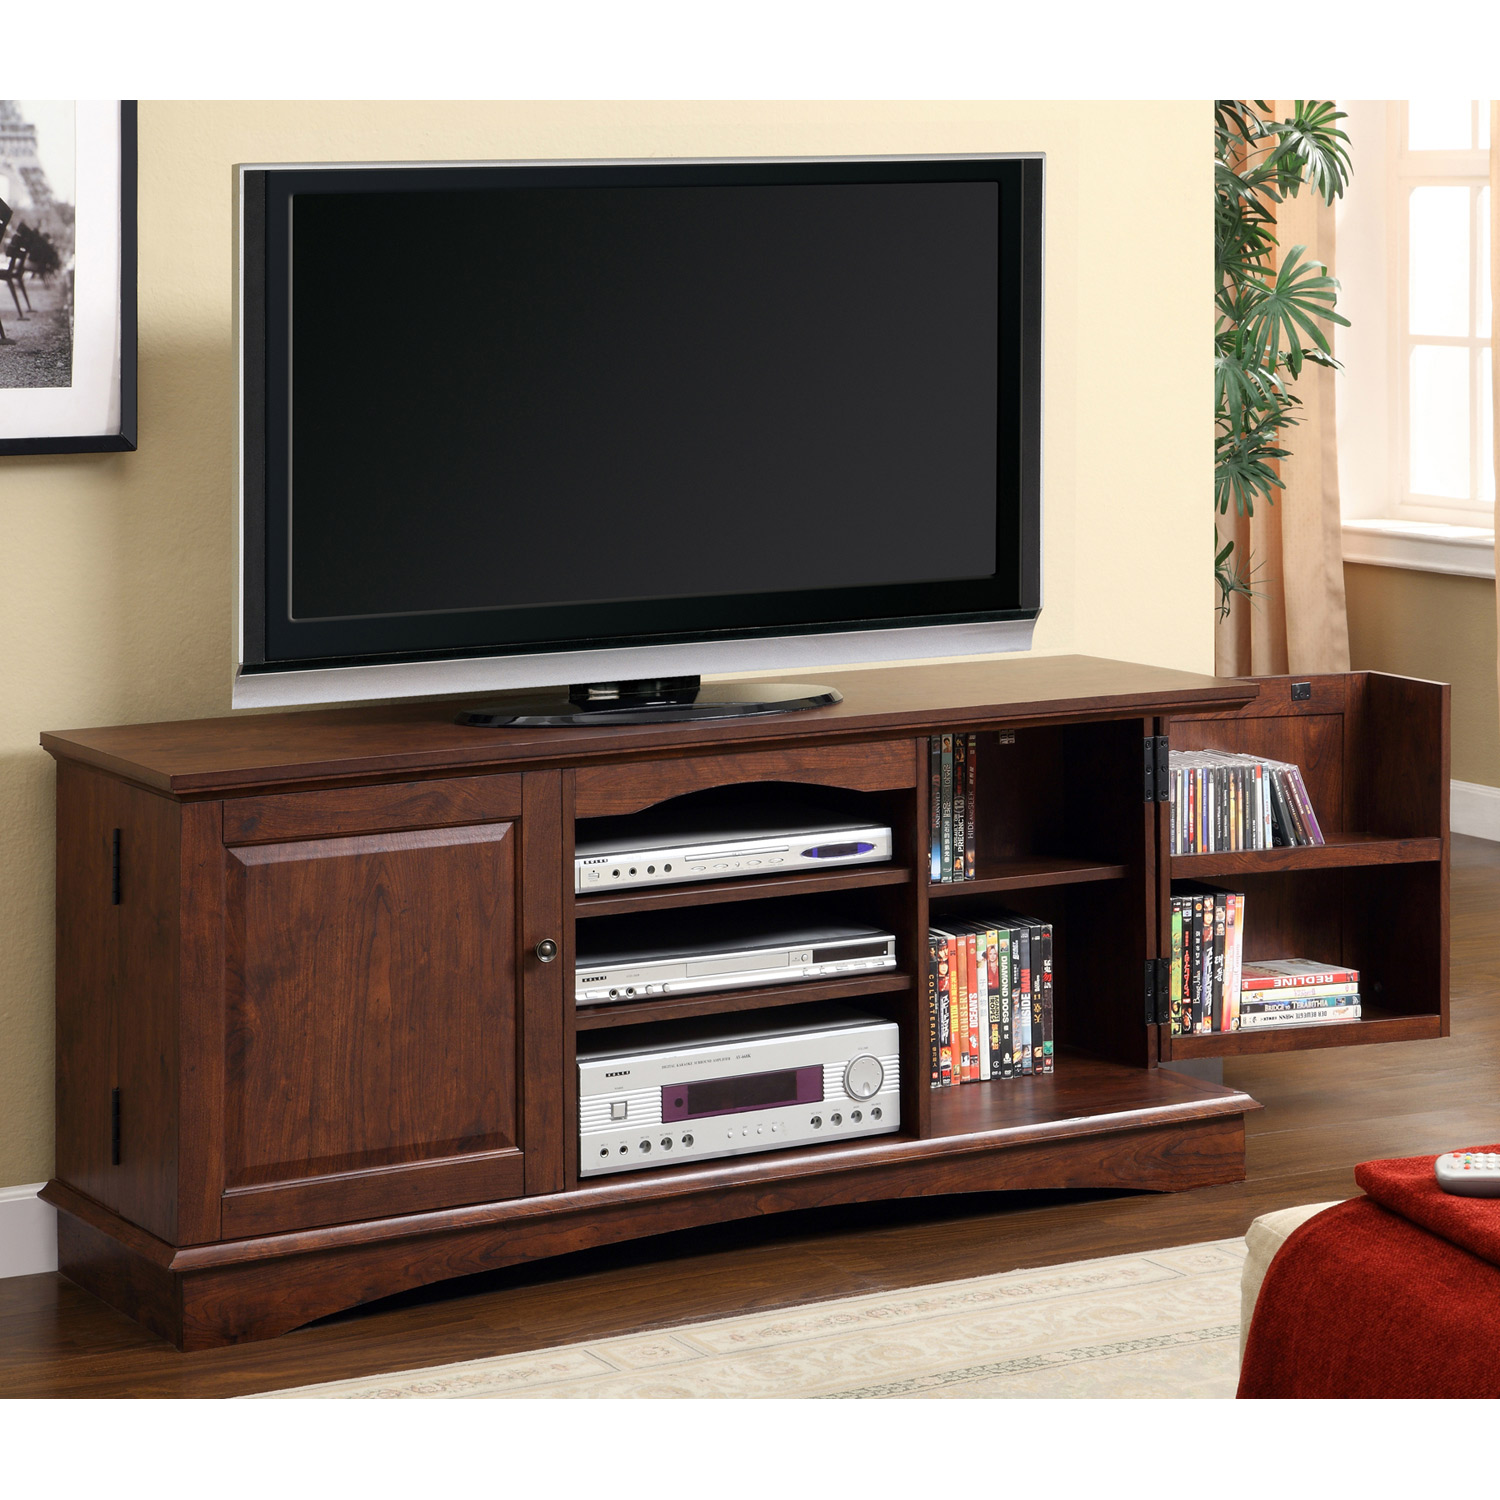 60 39 39 media storage wood tv console traditional brown for Tv console with storage